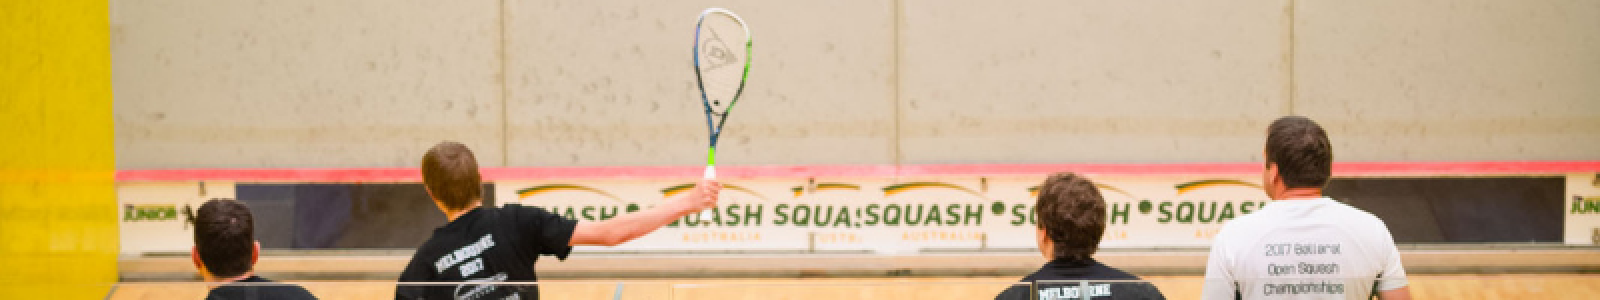 2021 Melbourne MS Mega Squash and Racquetball